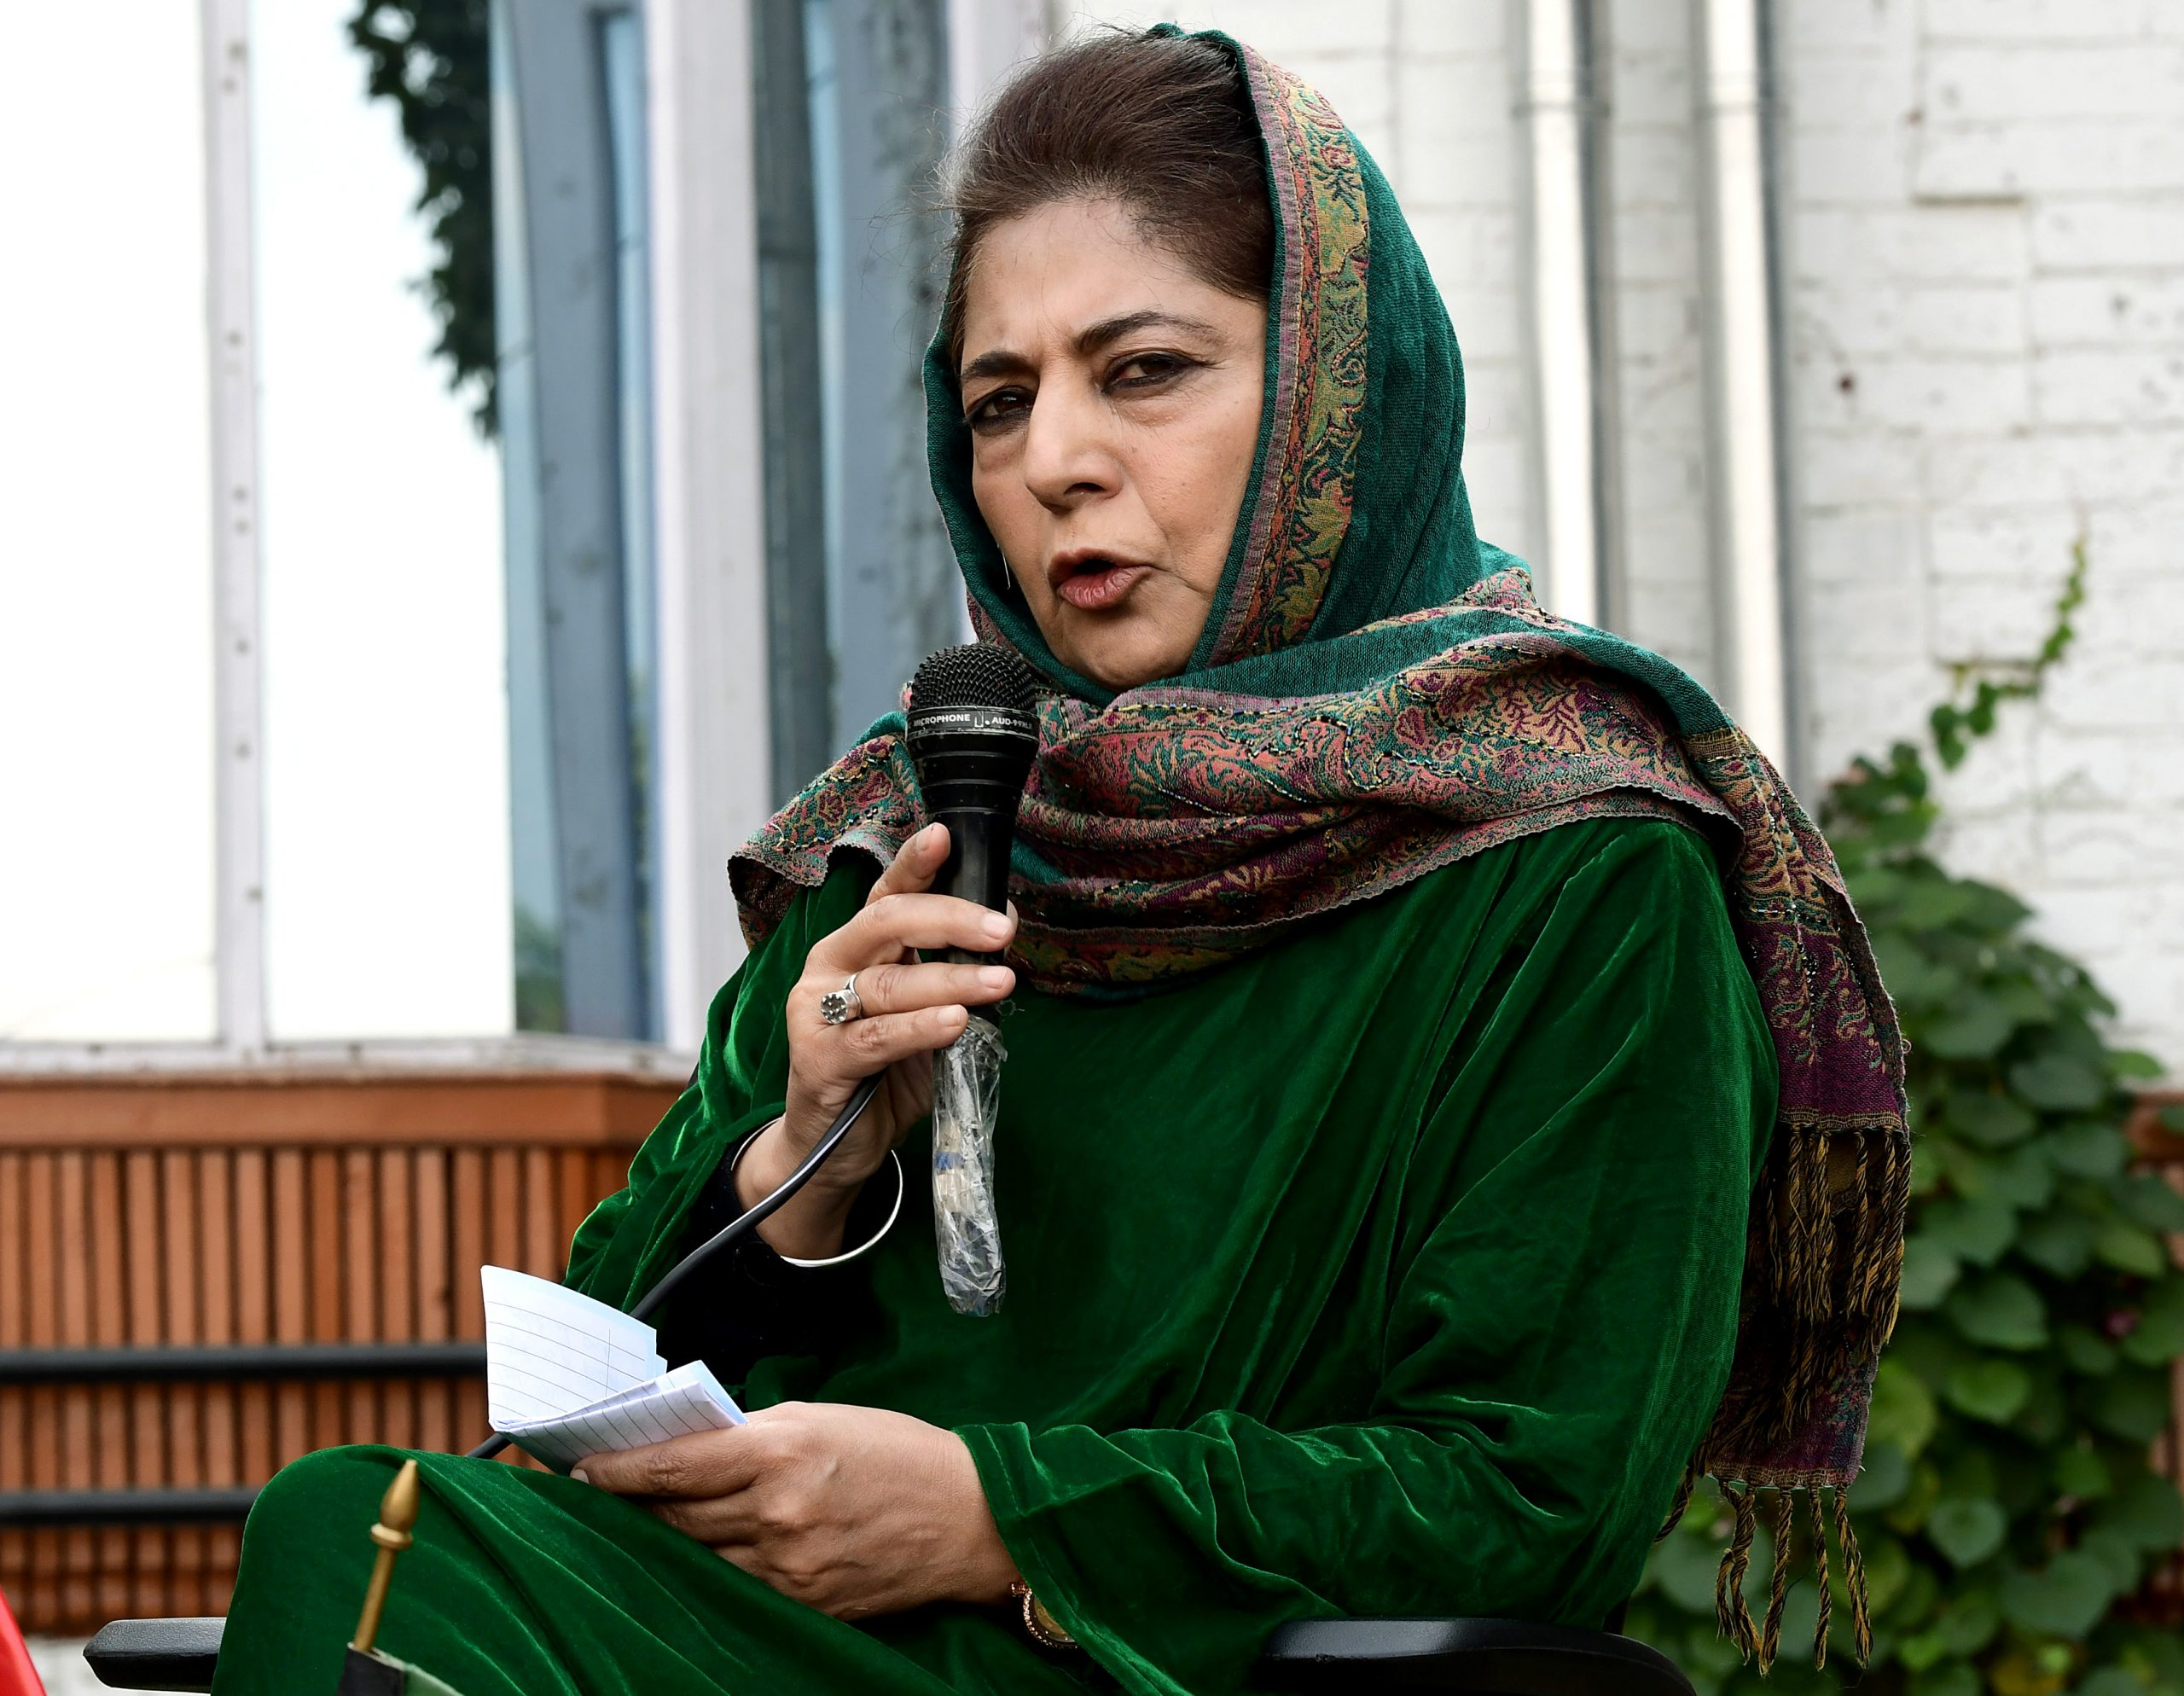 PDP President Mehooba Mufti addressing media during a press conference